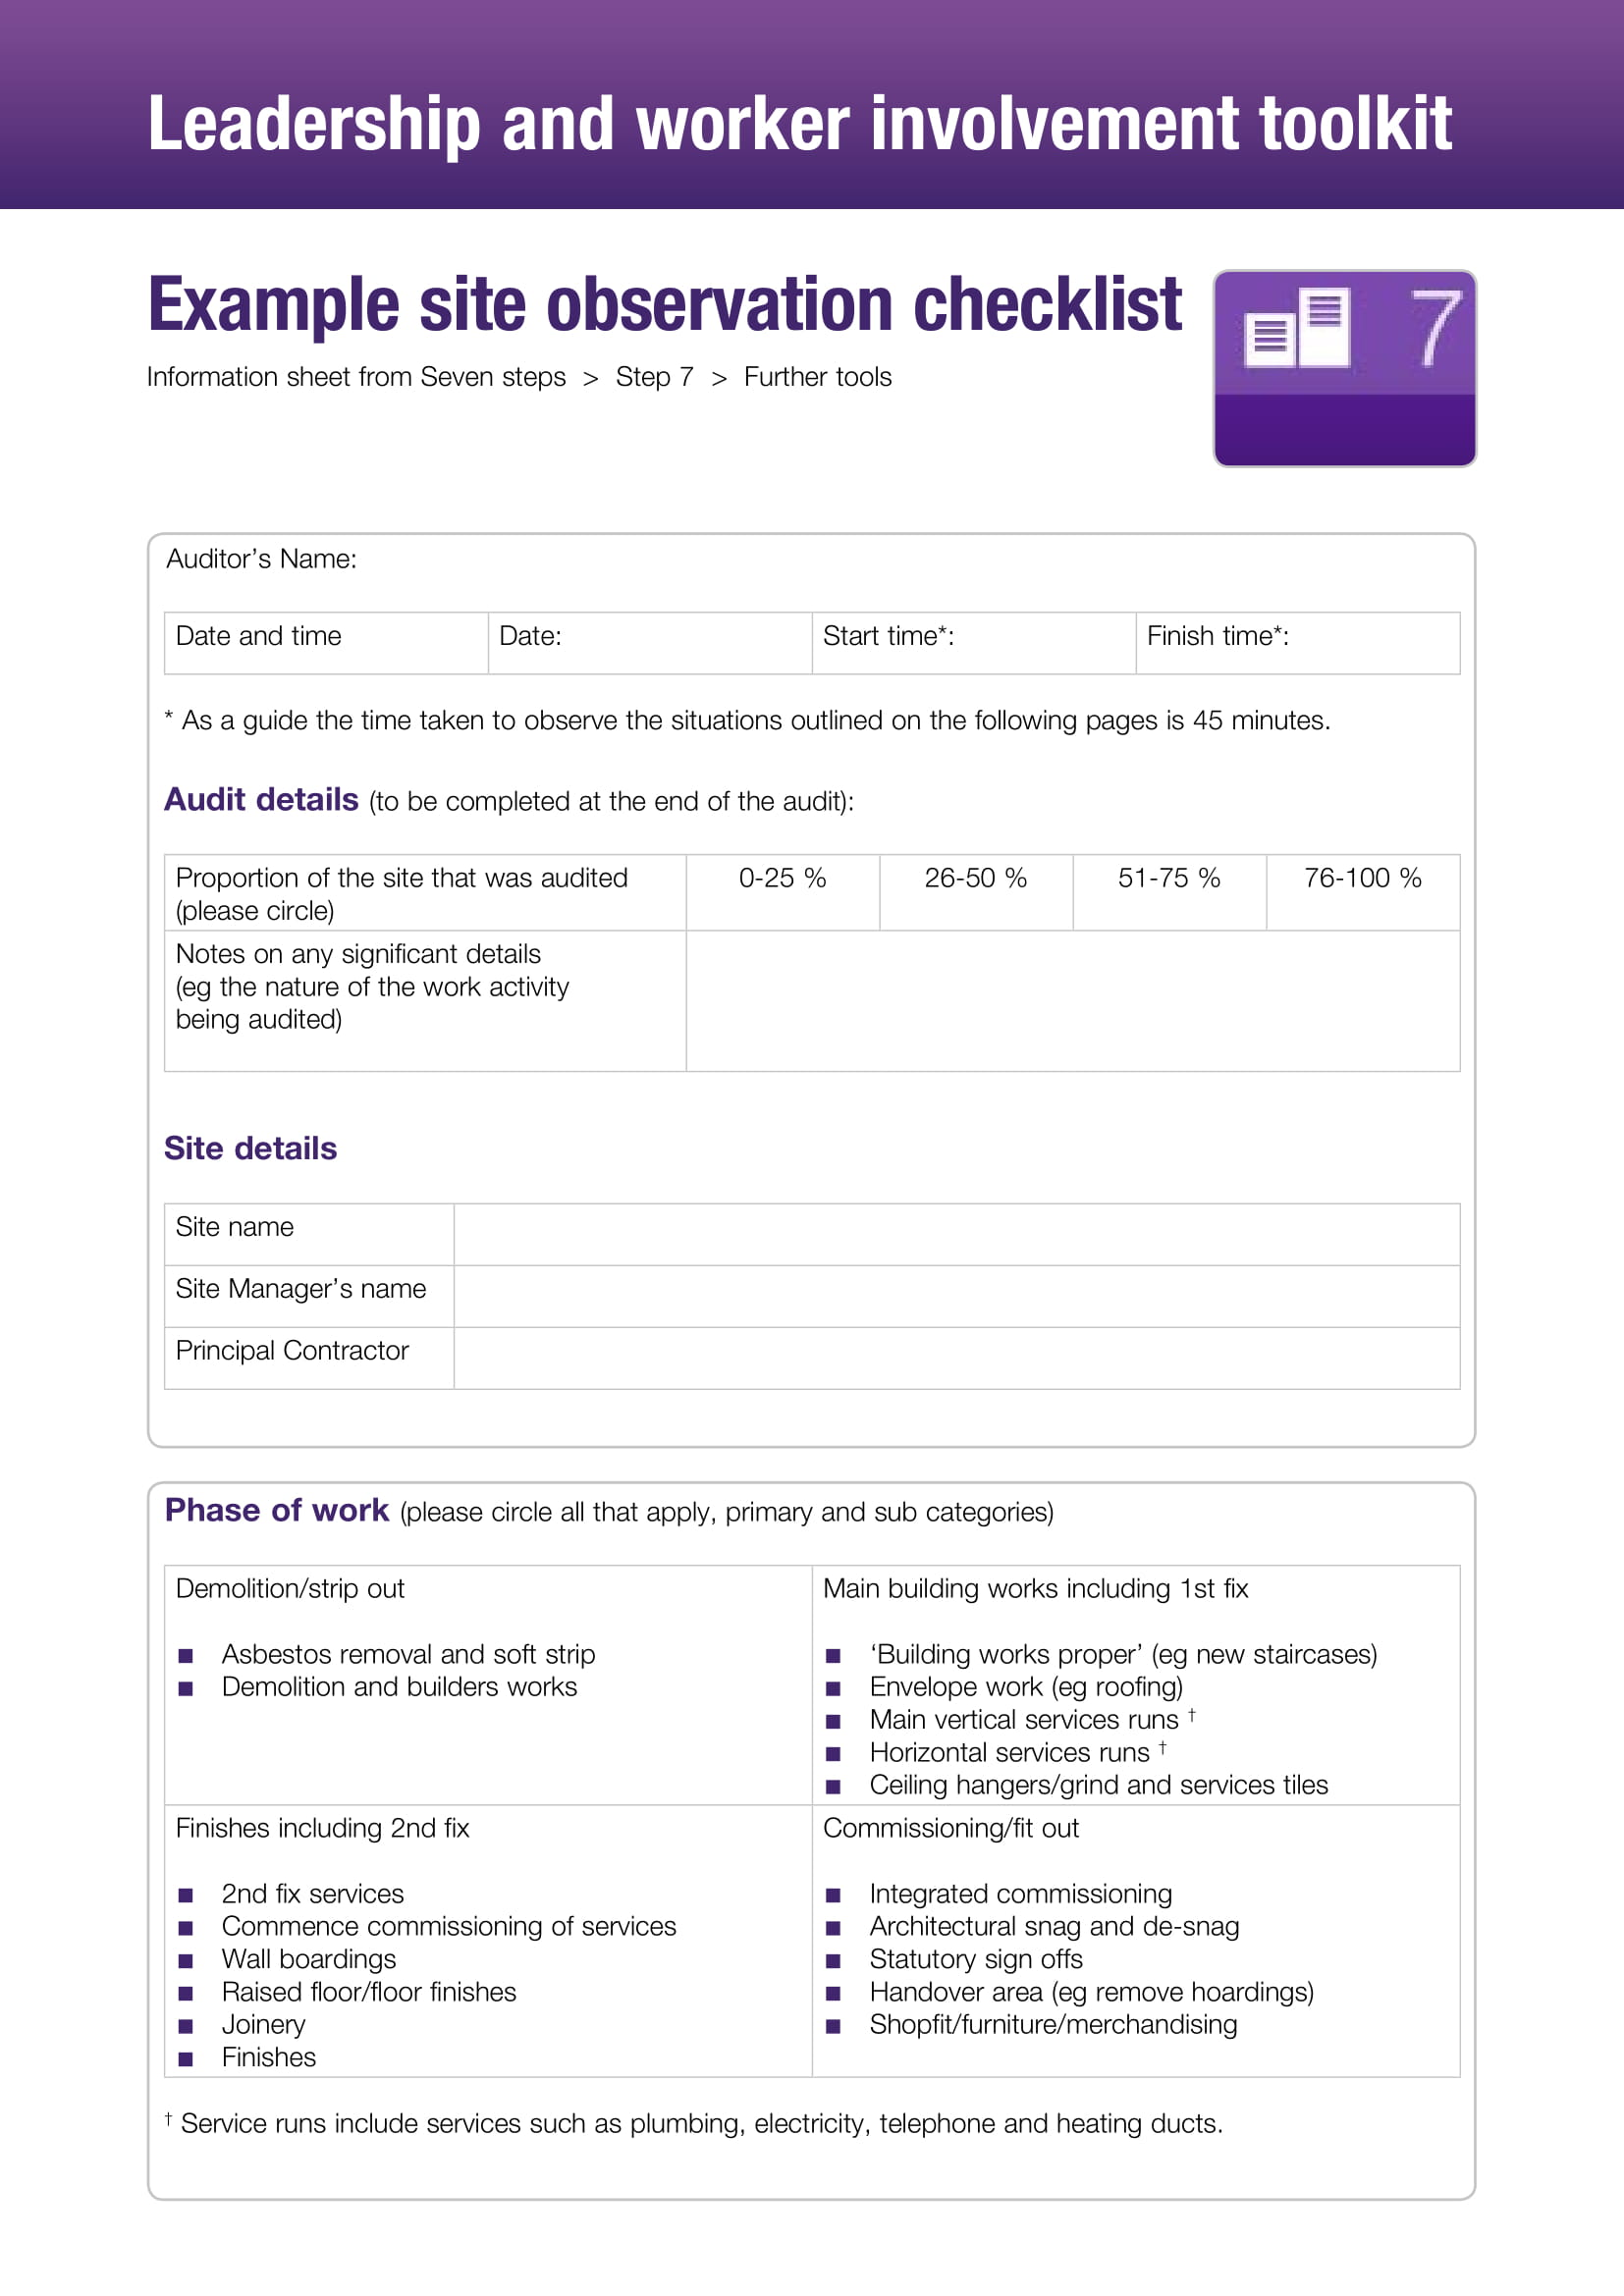 example site observational checklist 1